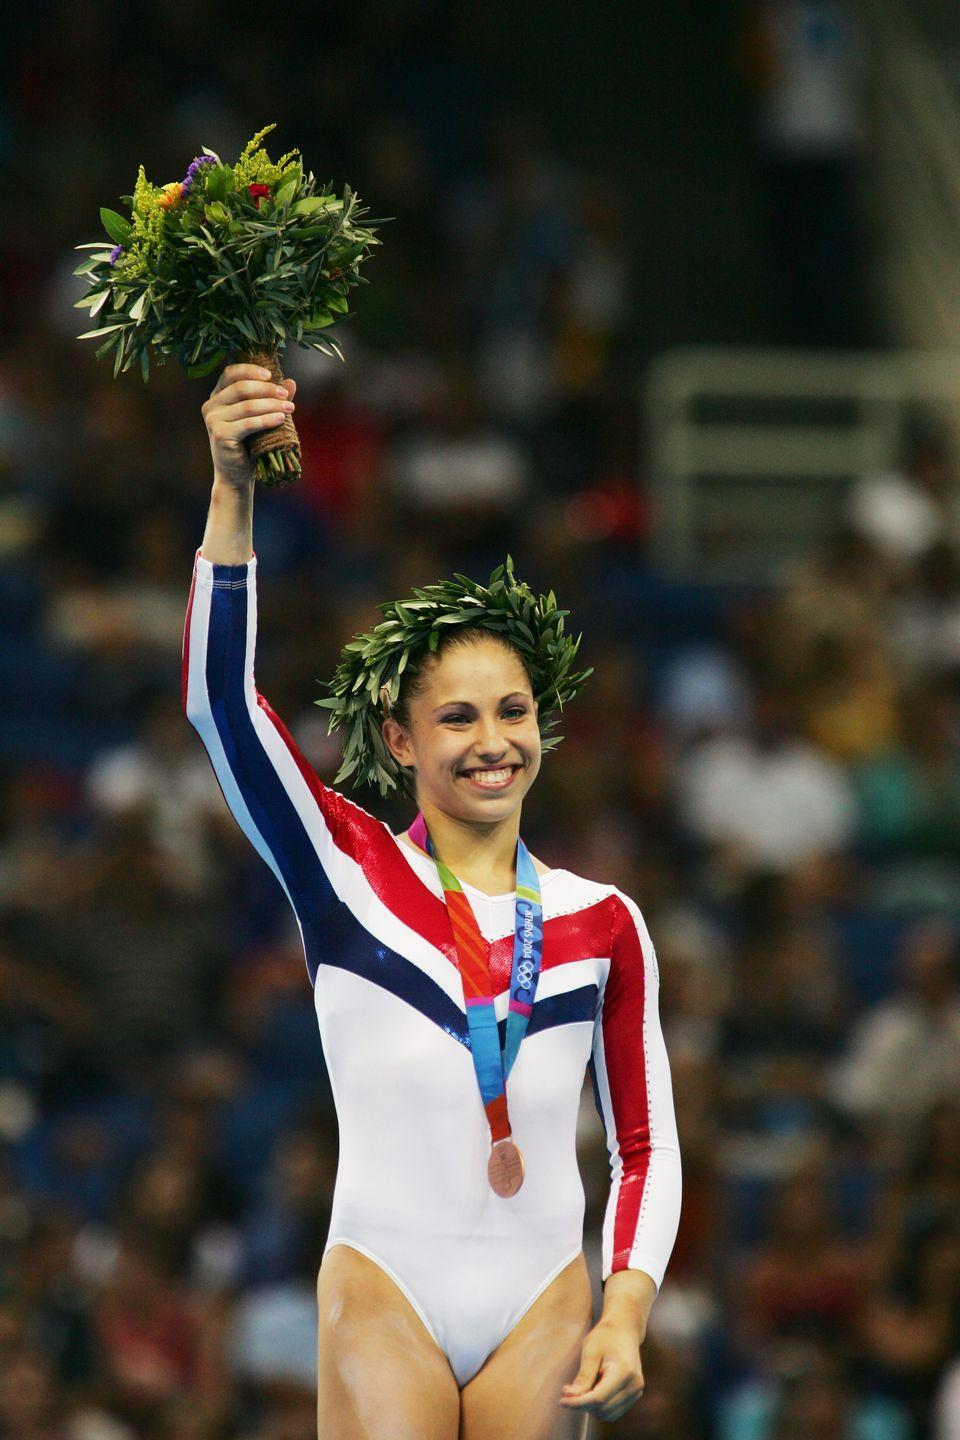 <p>Courtney Kupets achieved Olympic success winning two medals at the 2004 Athens Games. Although she was expected to compete in the 2008 Olympics, she retired due to injury in 2009. </p>